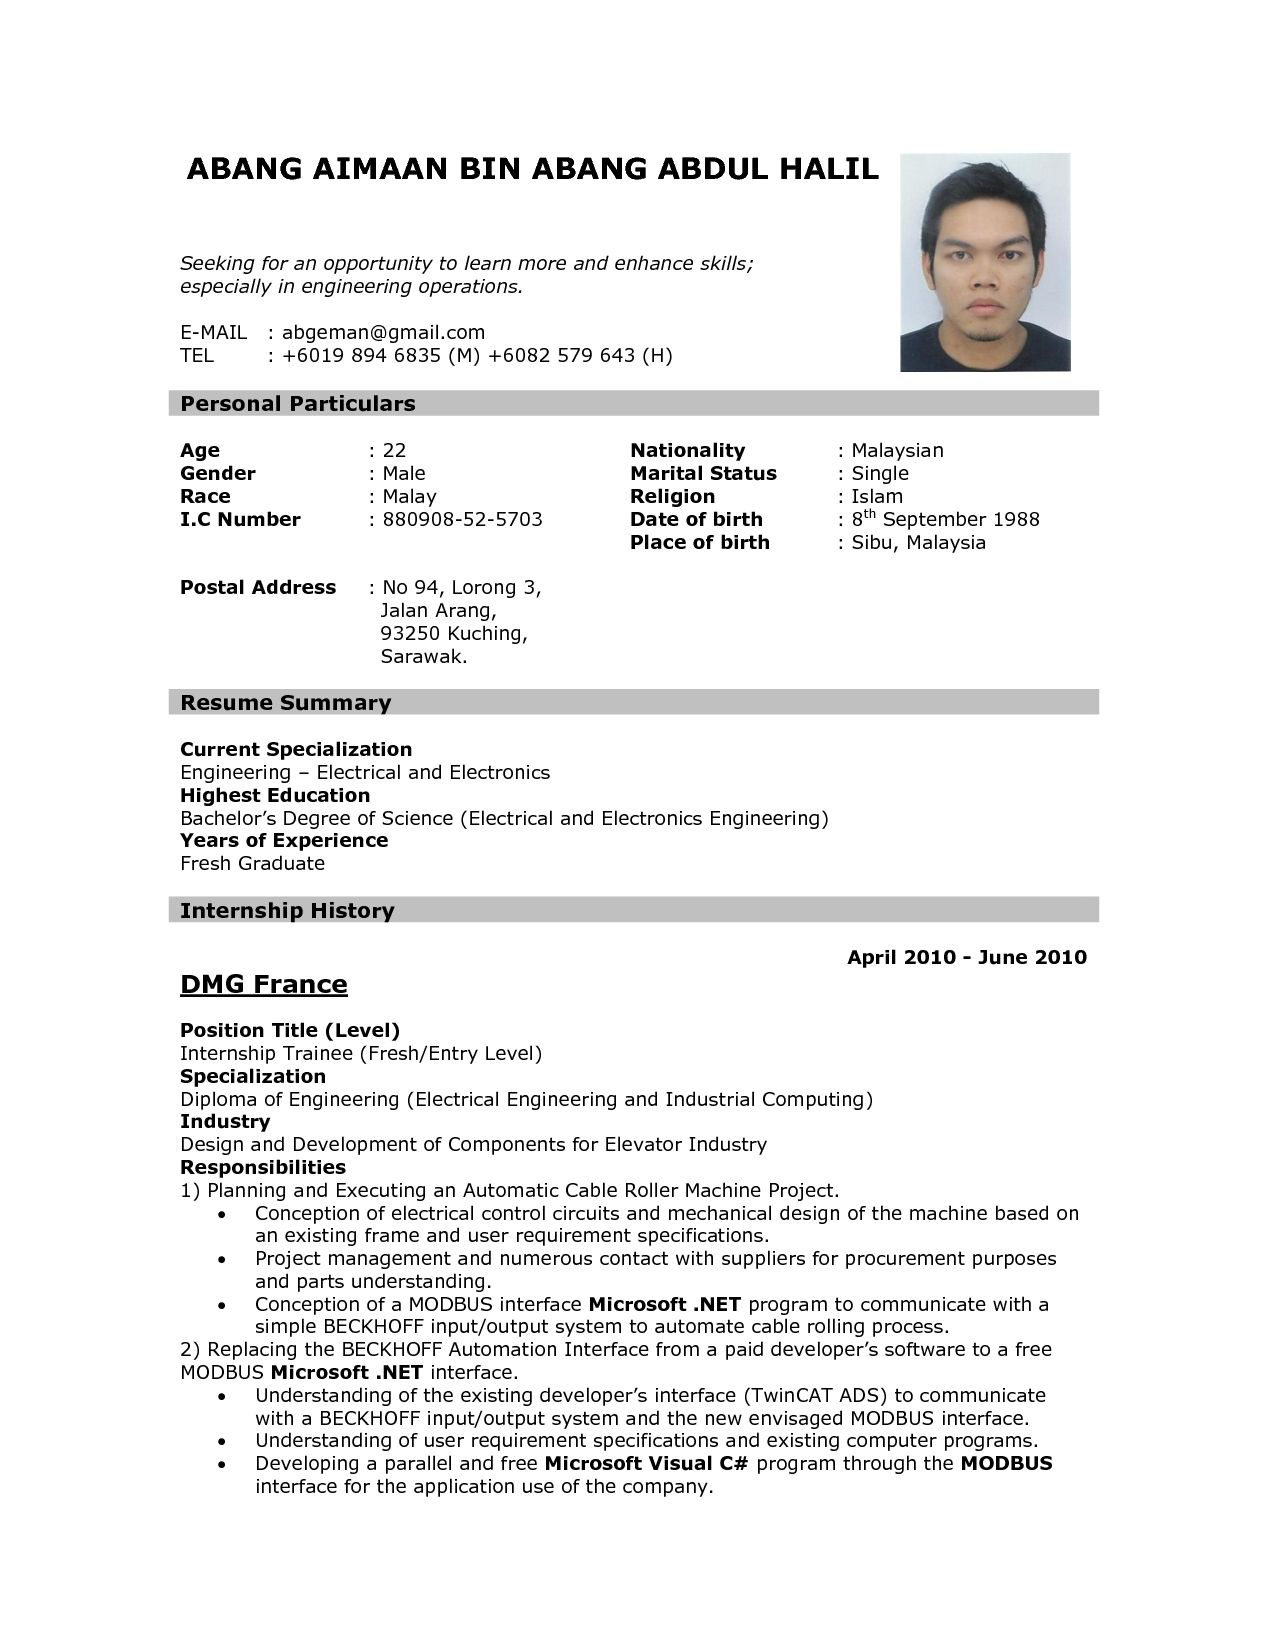 format of resume for job application to data sample format of resume for job application to data sample resume the sample resume for applying